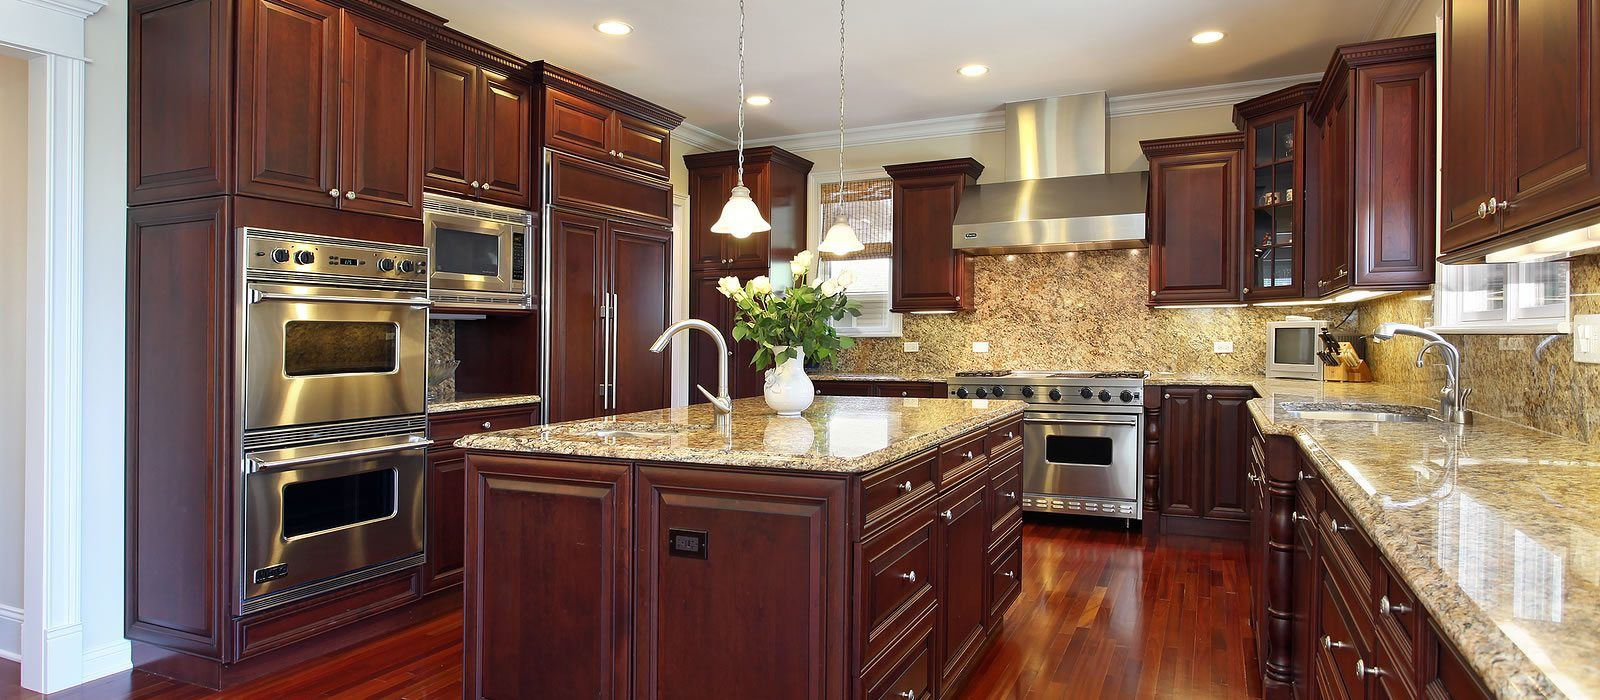 Best Kitchen Gallery: 3 Important Considerations Before You Invest In New Kitchen of Kitchen Cabinets Cleveland on cal-ite.com